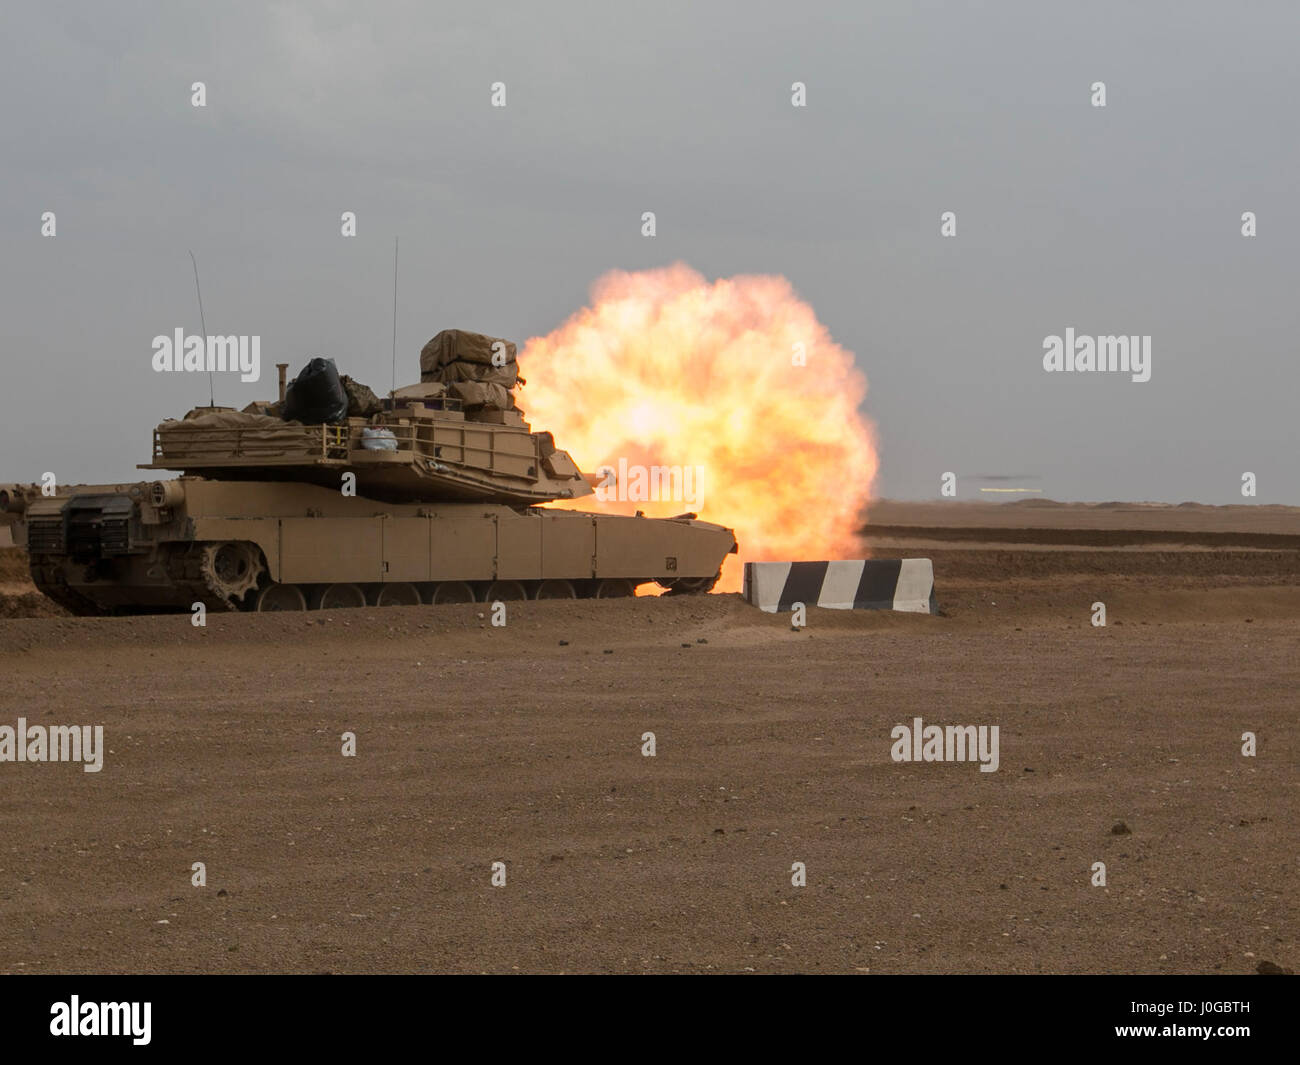 A 3rd Armored Brigade Combat Team, 1st Cavalry Division M1A2 Abrams Main Battle Tank engages targets during the Stock Photo